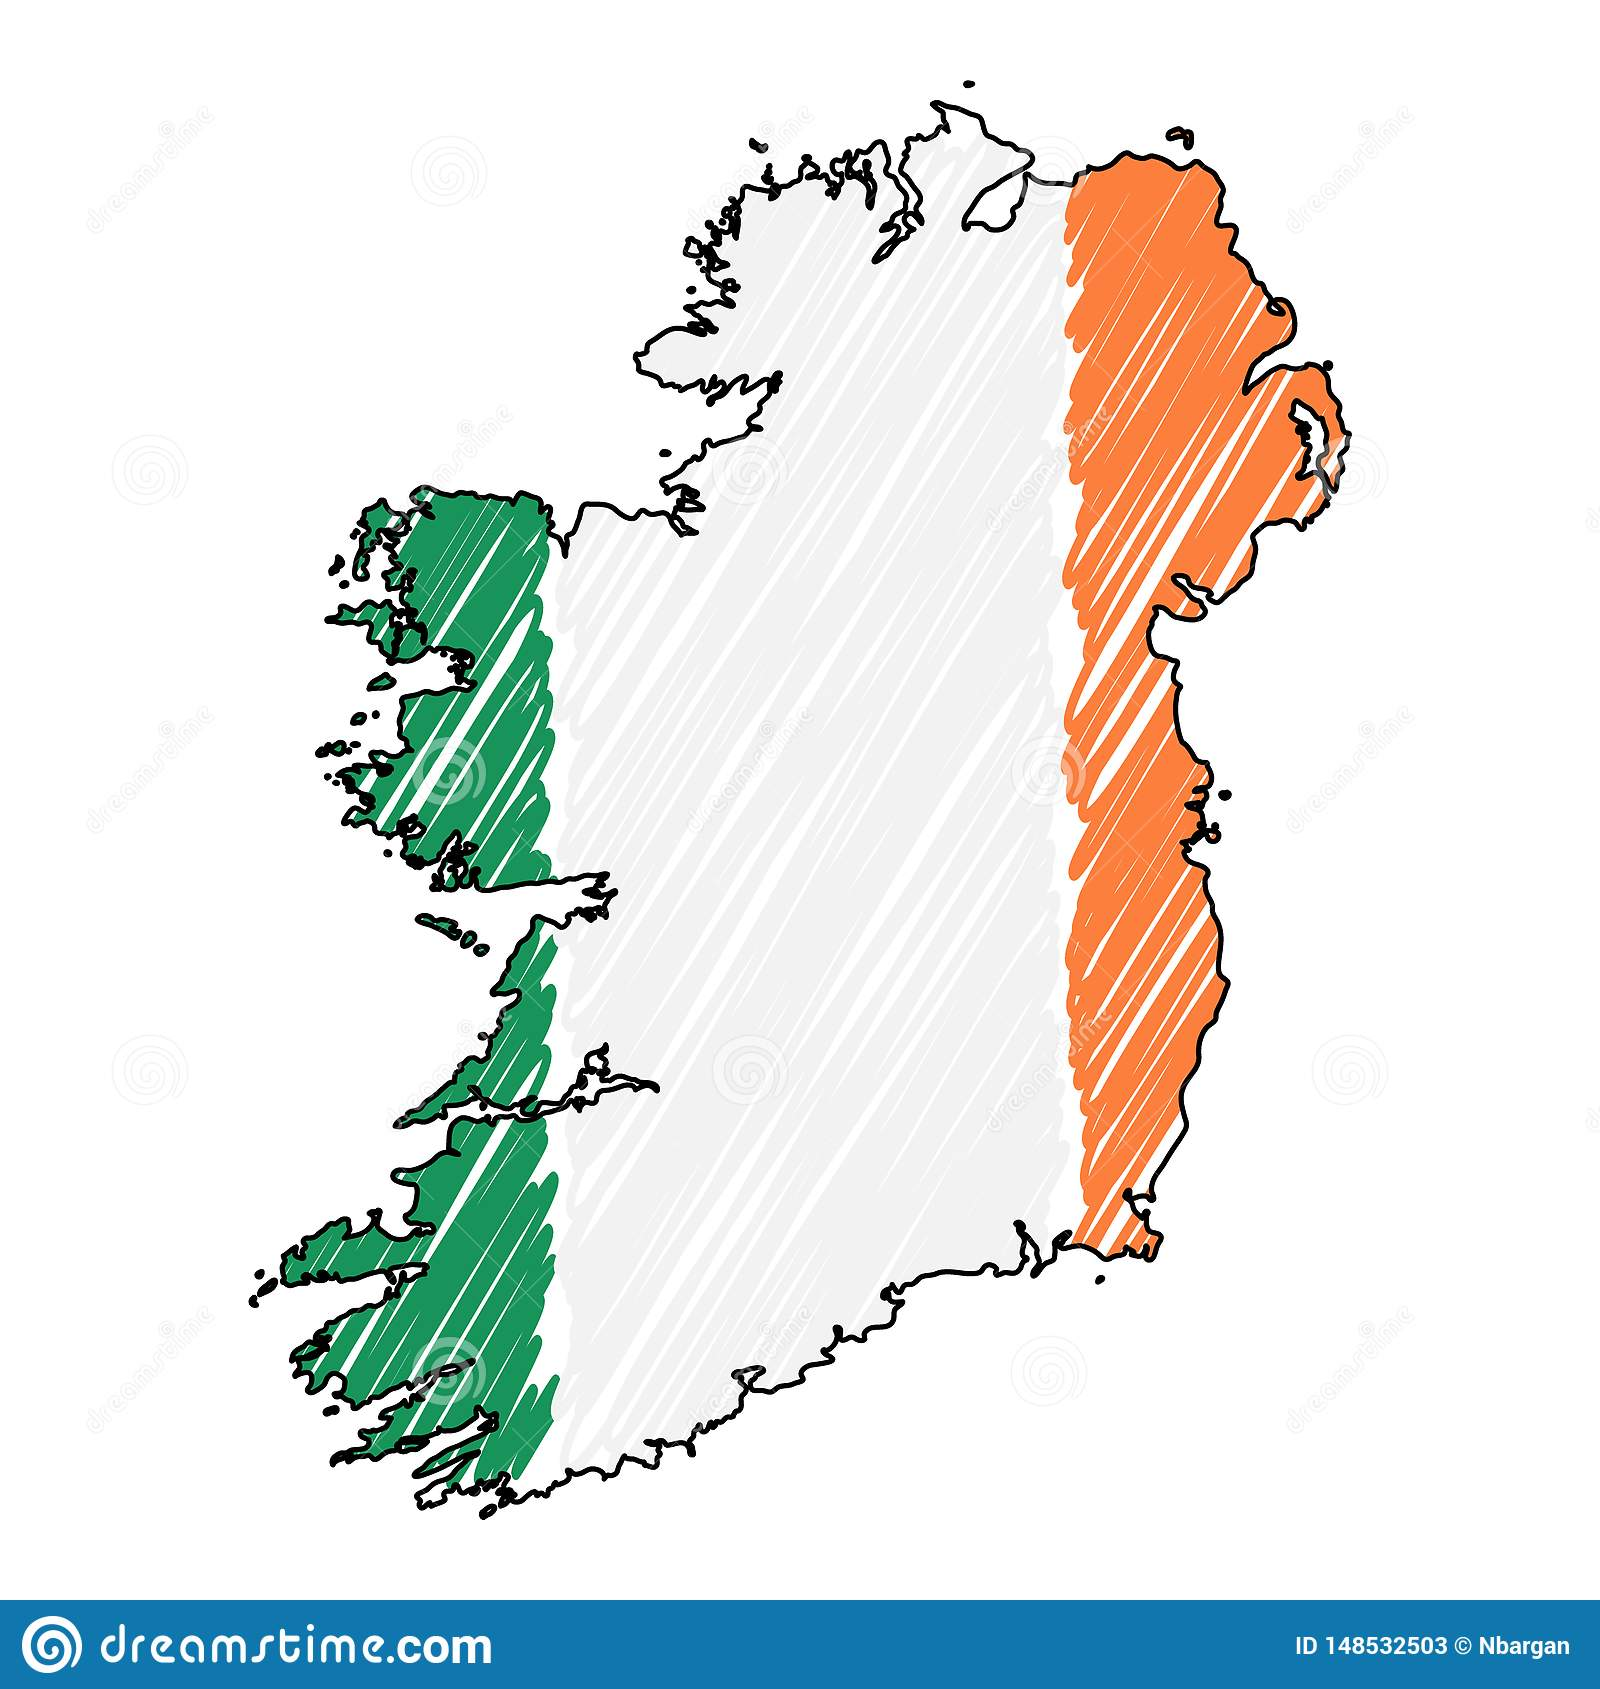 Map Of Ireland Drawing.Ireland Map Hand Drawn Sketch Vector Concept Illustration Flag